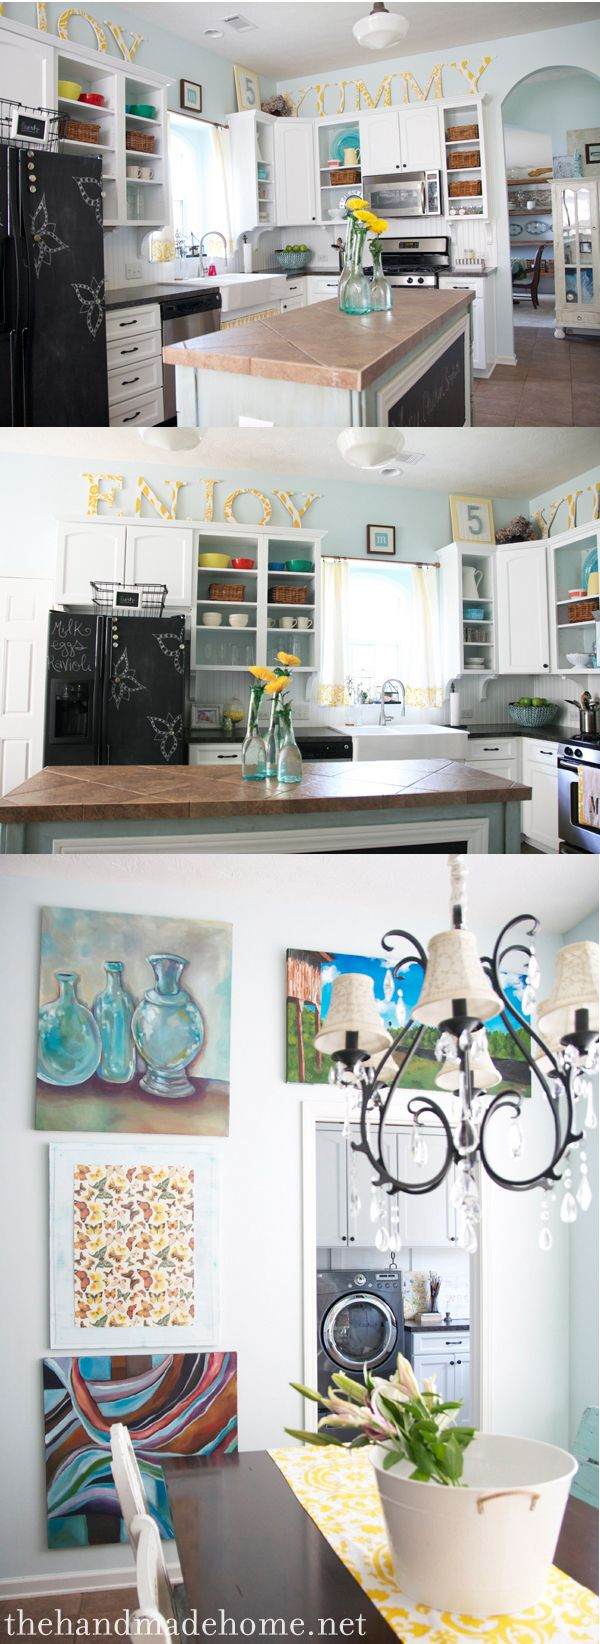 Cute big letters above kitchen cabinets to take up space!